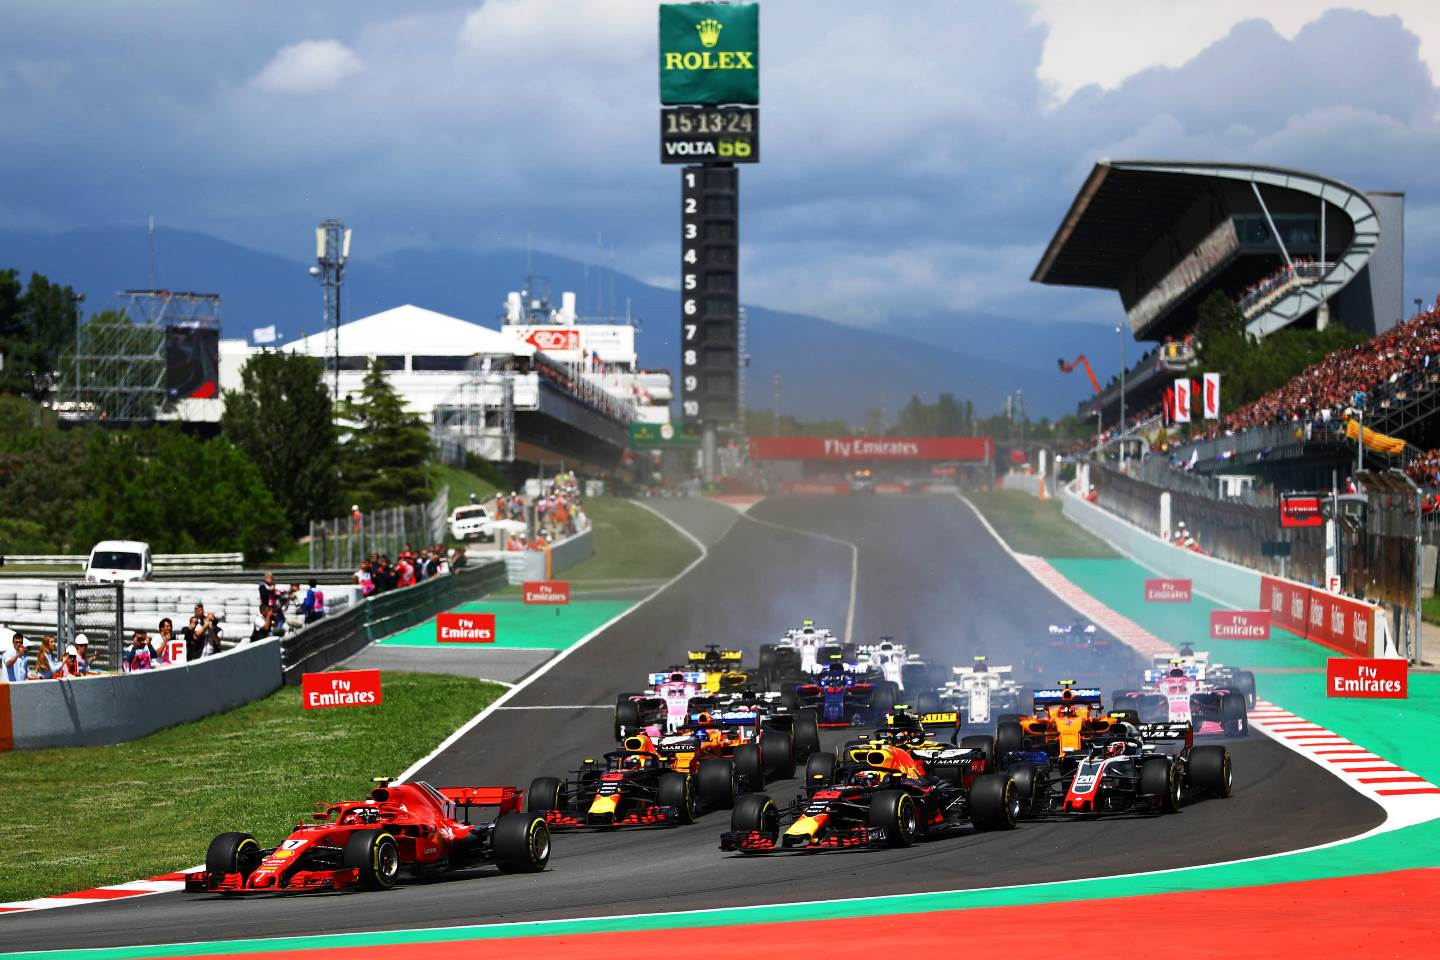 Largada do GP da Espanha de F-1. Photo by Dan Istitene/Getty Images) // Getty Images / Red Bull Content Pool // AP-1VNCJ1SVW1W11 // Usage for editorial use only // Please go to www.redbullcontentpool.com for further information. //